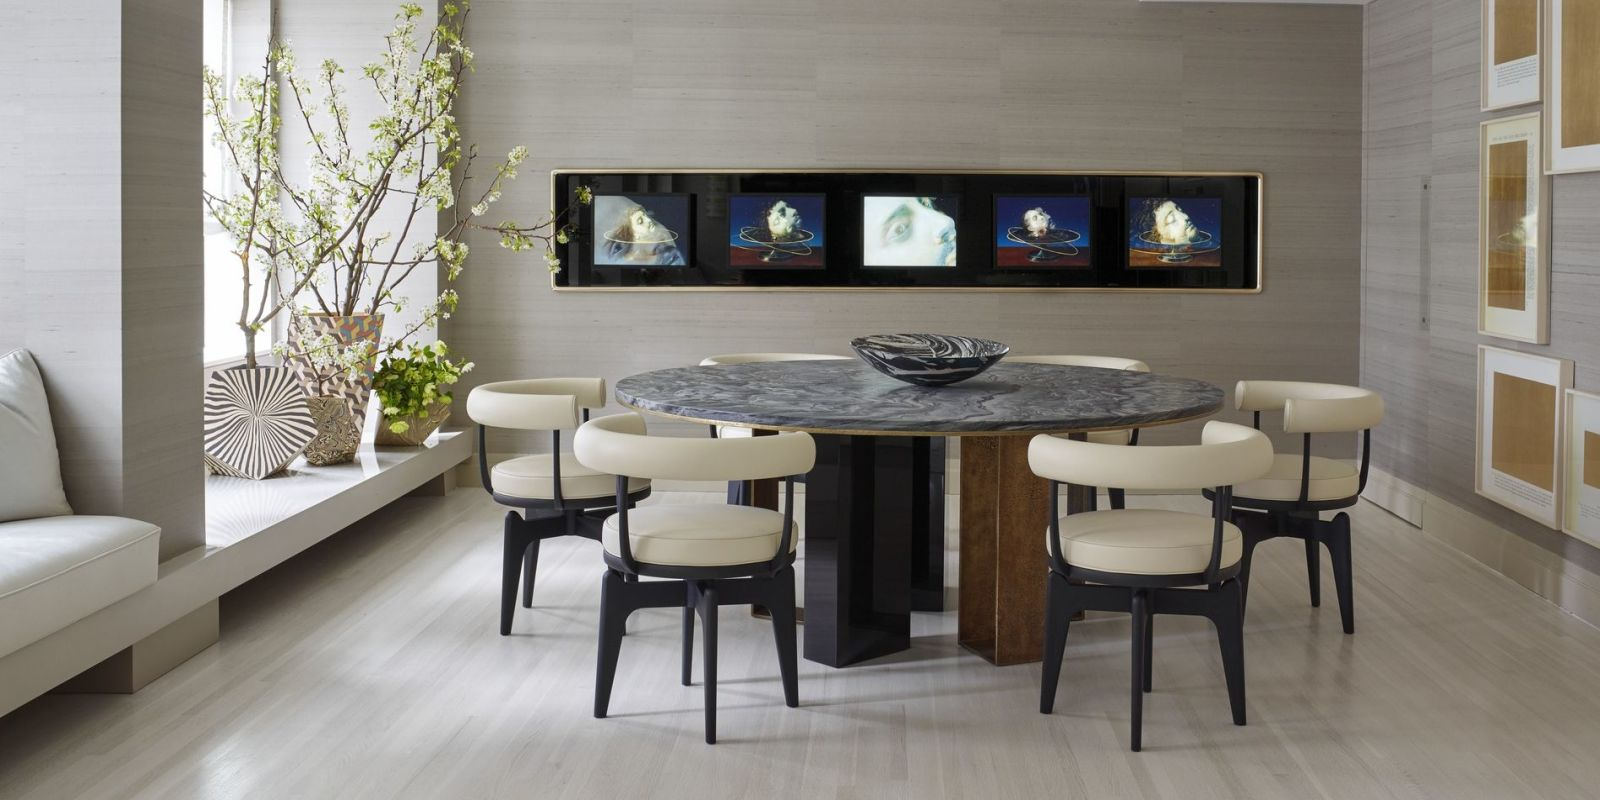 25 modern dining room decorating ideas contemporary for Dining room designs uk